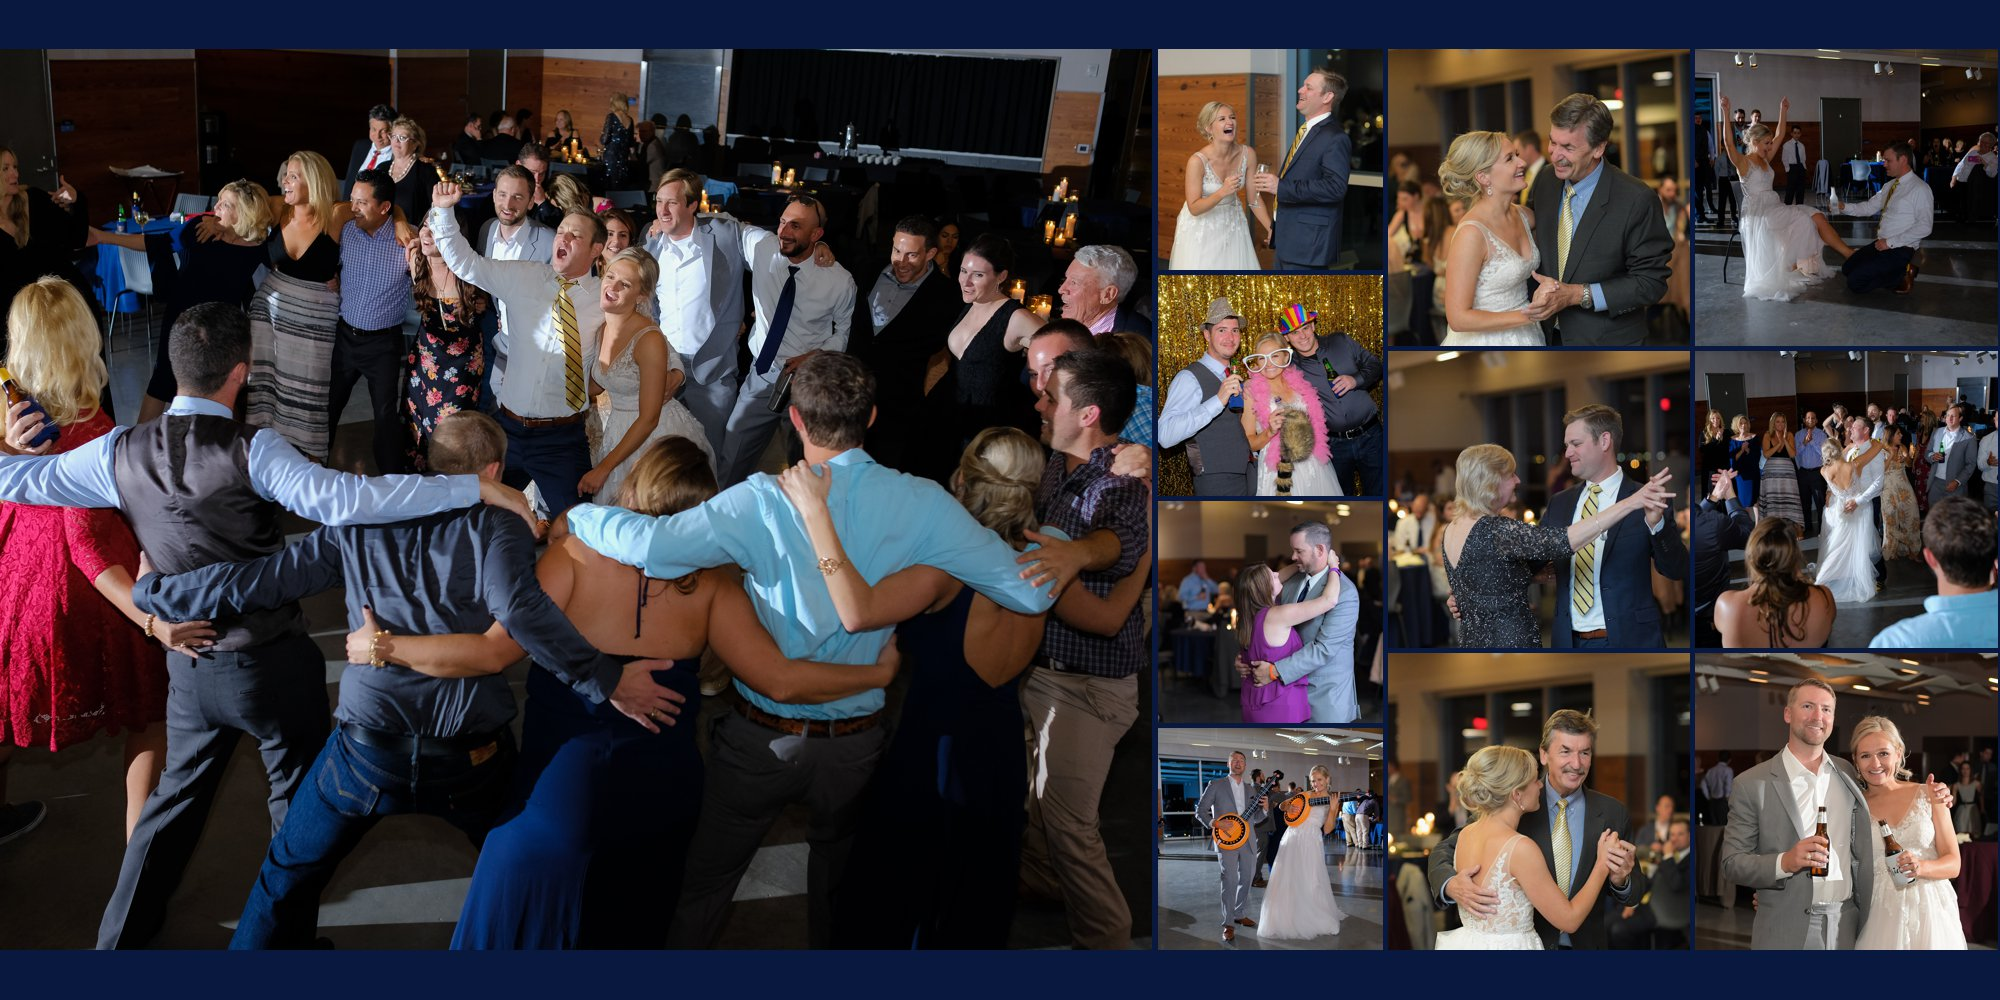 Sea Scout Base Galveston Texas Wedding Photographer